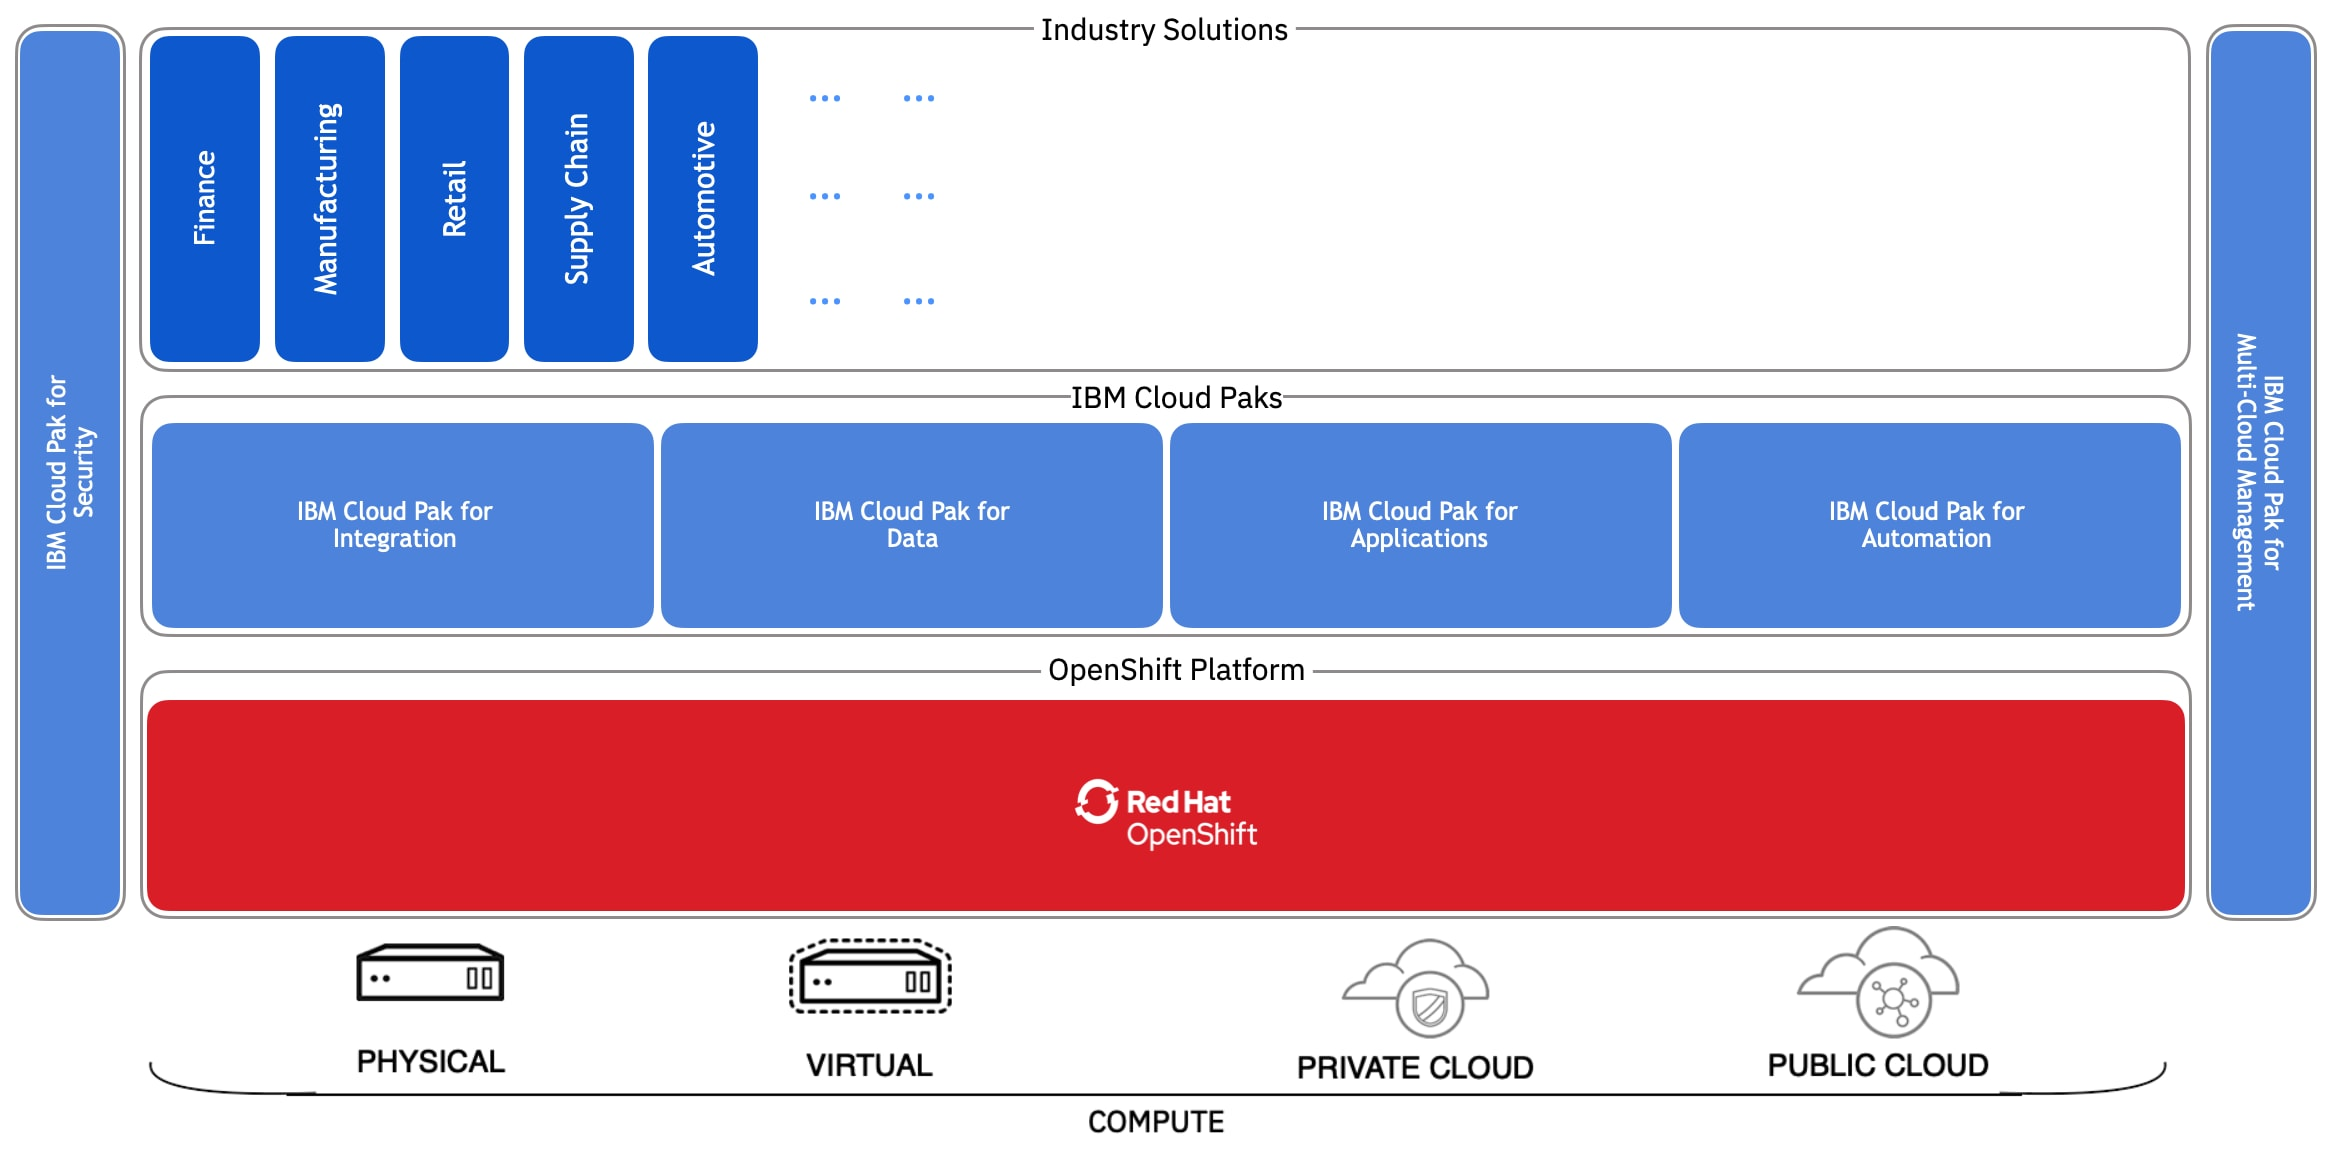 These patterns exploit Red Hat OpenShift and the IBM Cloud Pak solutions as the complete platform for building hybrid, multicloud solutions, and narrow the cloud skills gap by providing solutions that are already infused with cloud native best-practises, including availability, scalability, resilience, security, and observability